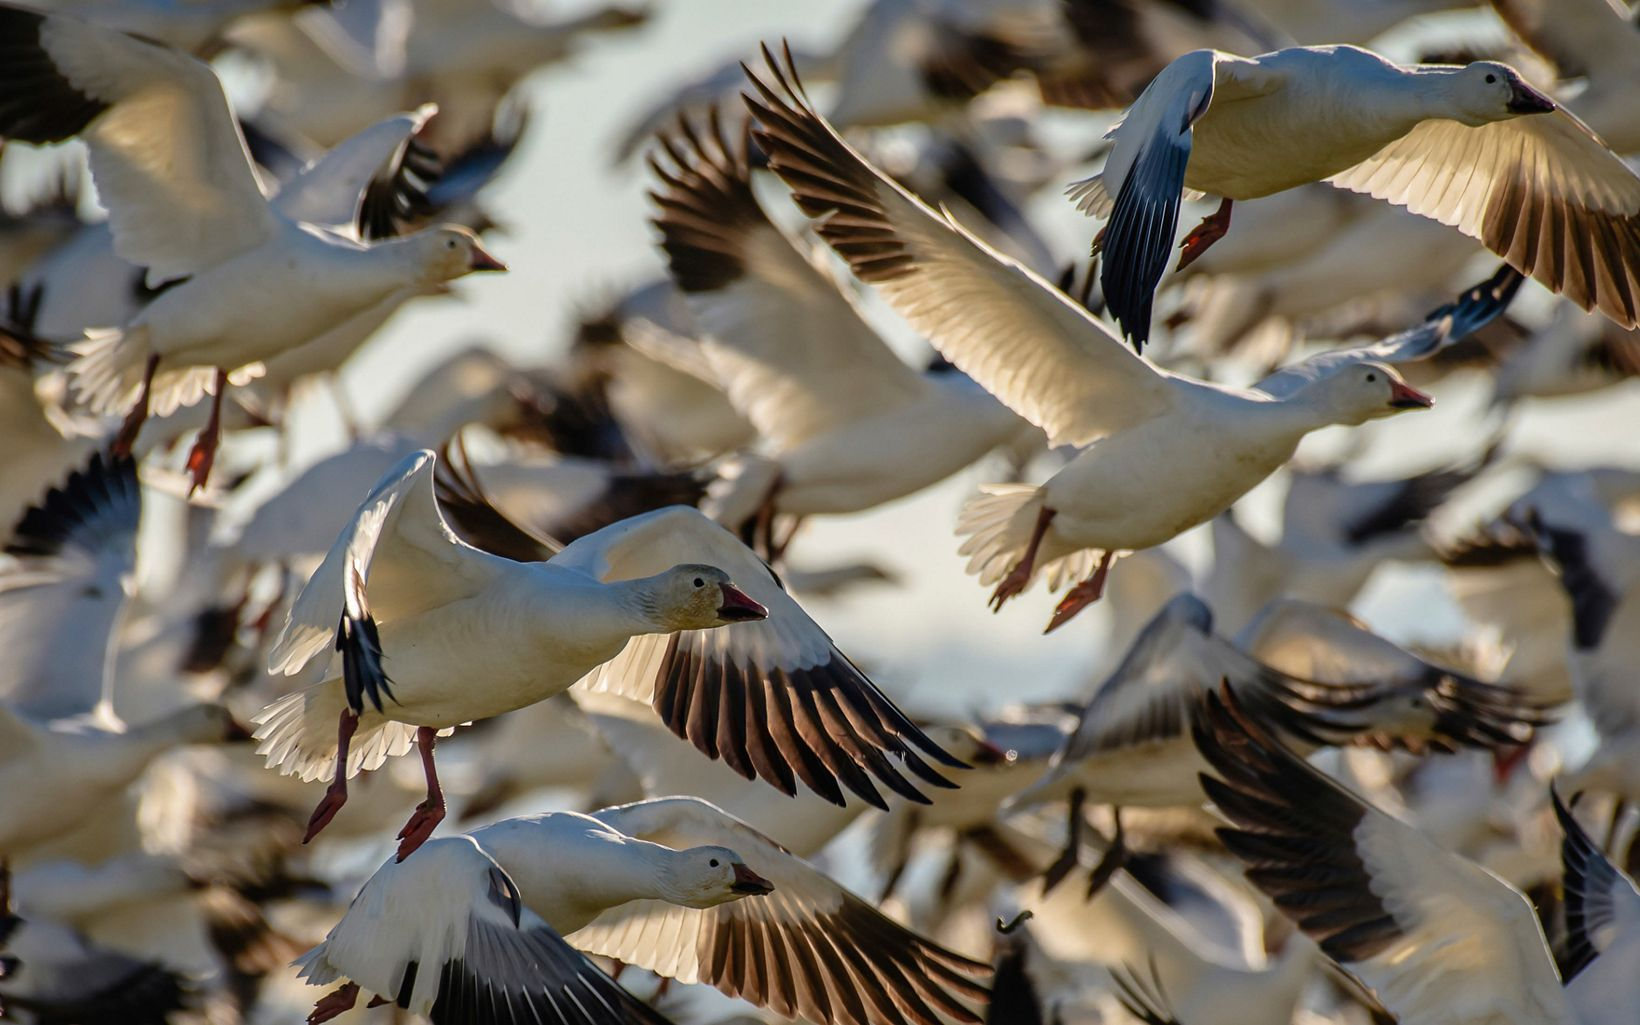 Large flock of snow geese block out all other scenery